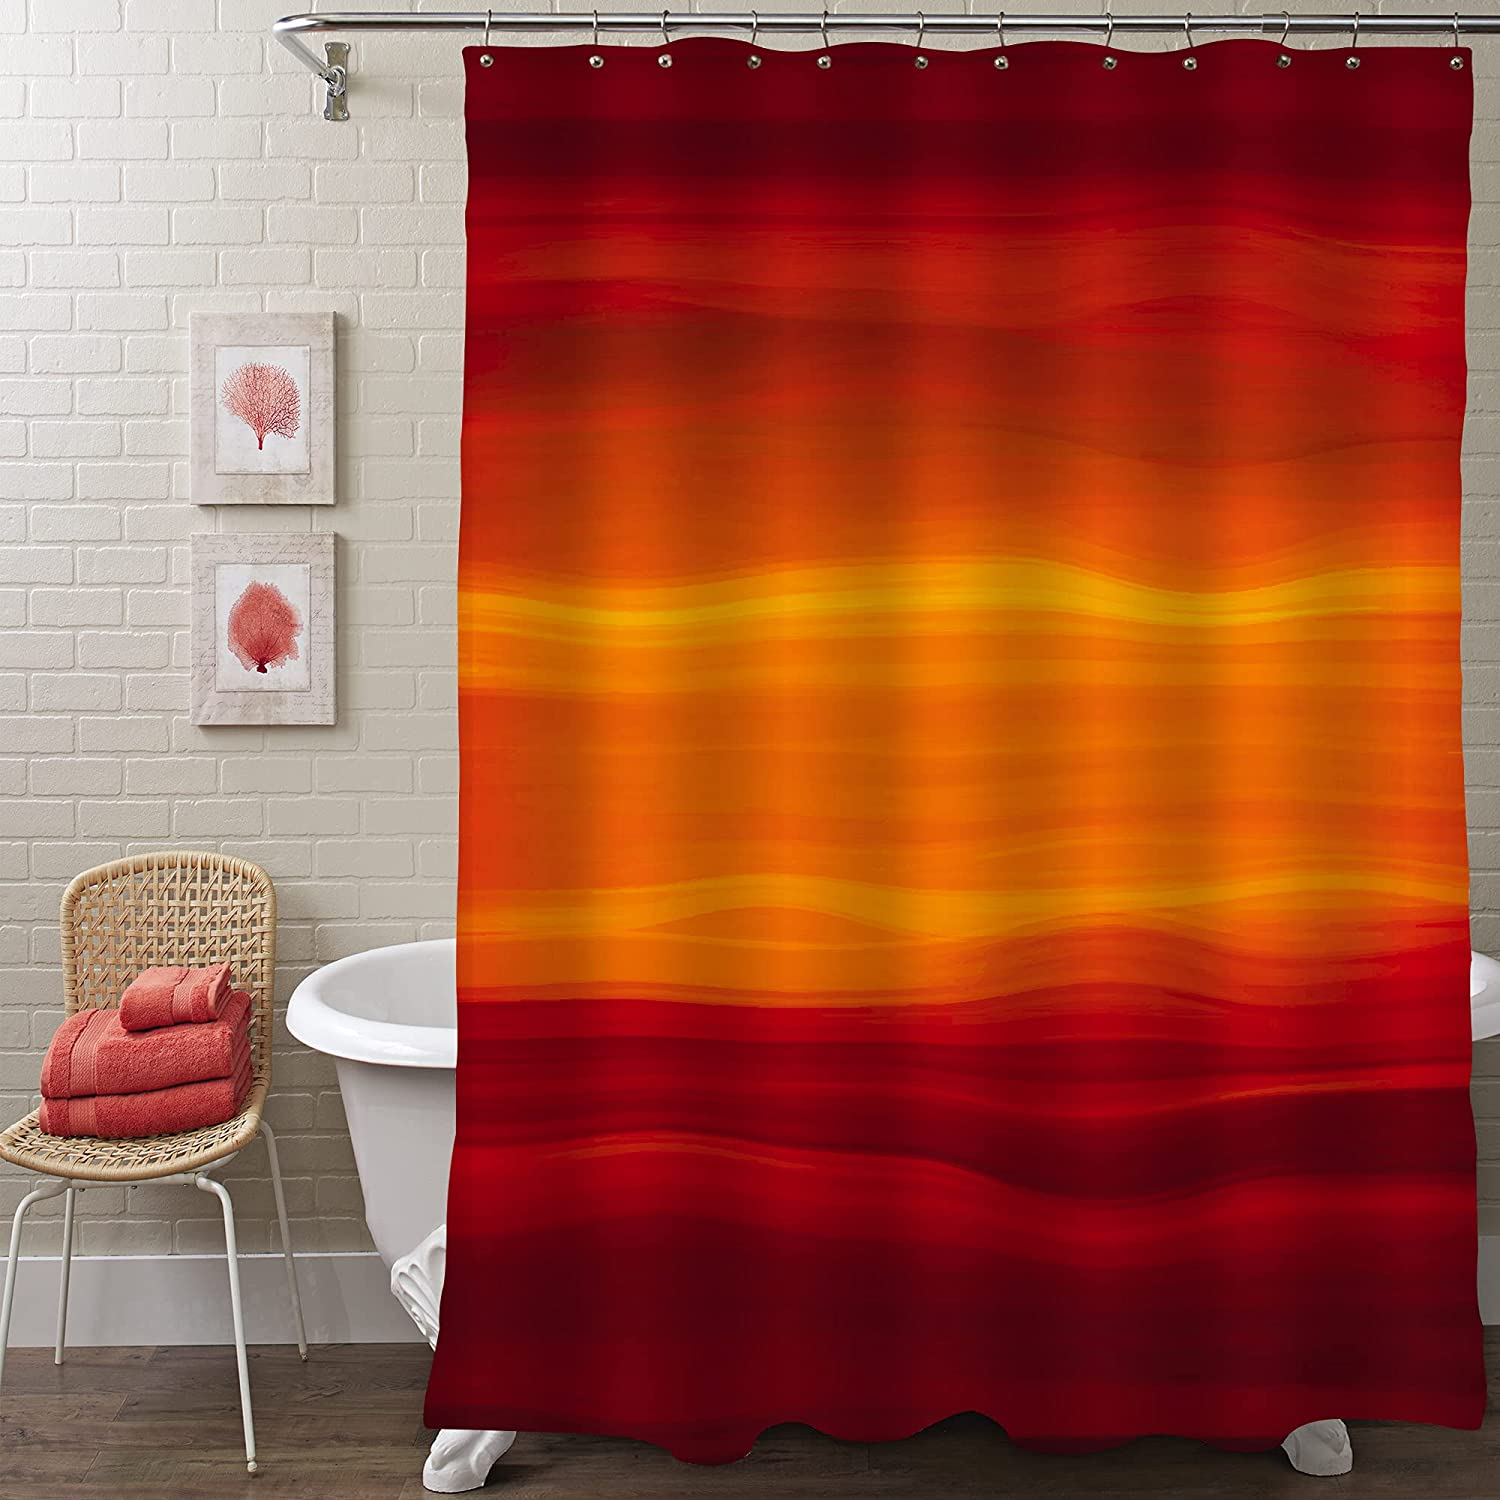 MitoVilla Orange Extra Long Shower Curtain In Burnt Save money Super Special SALE held 96 O Length